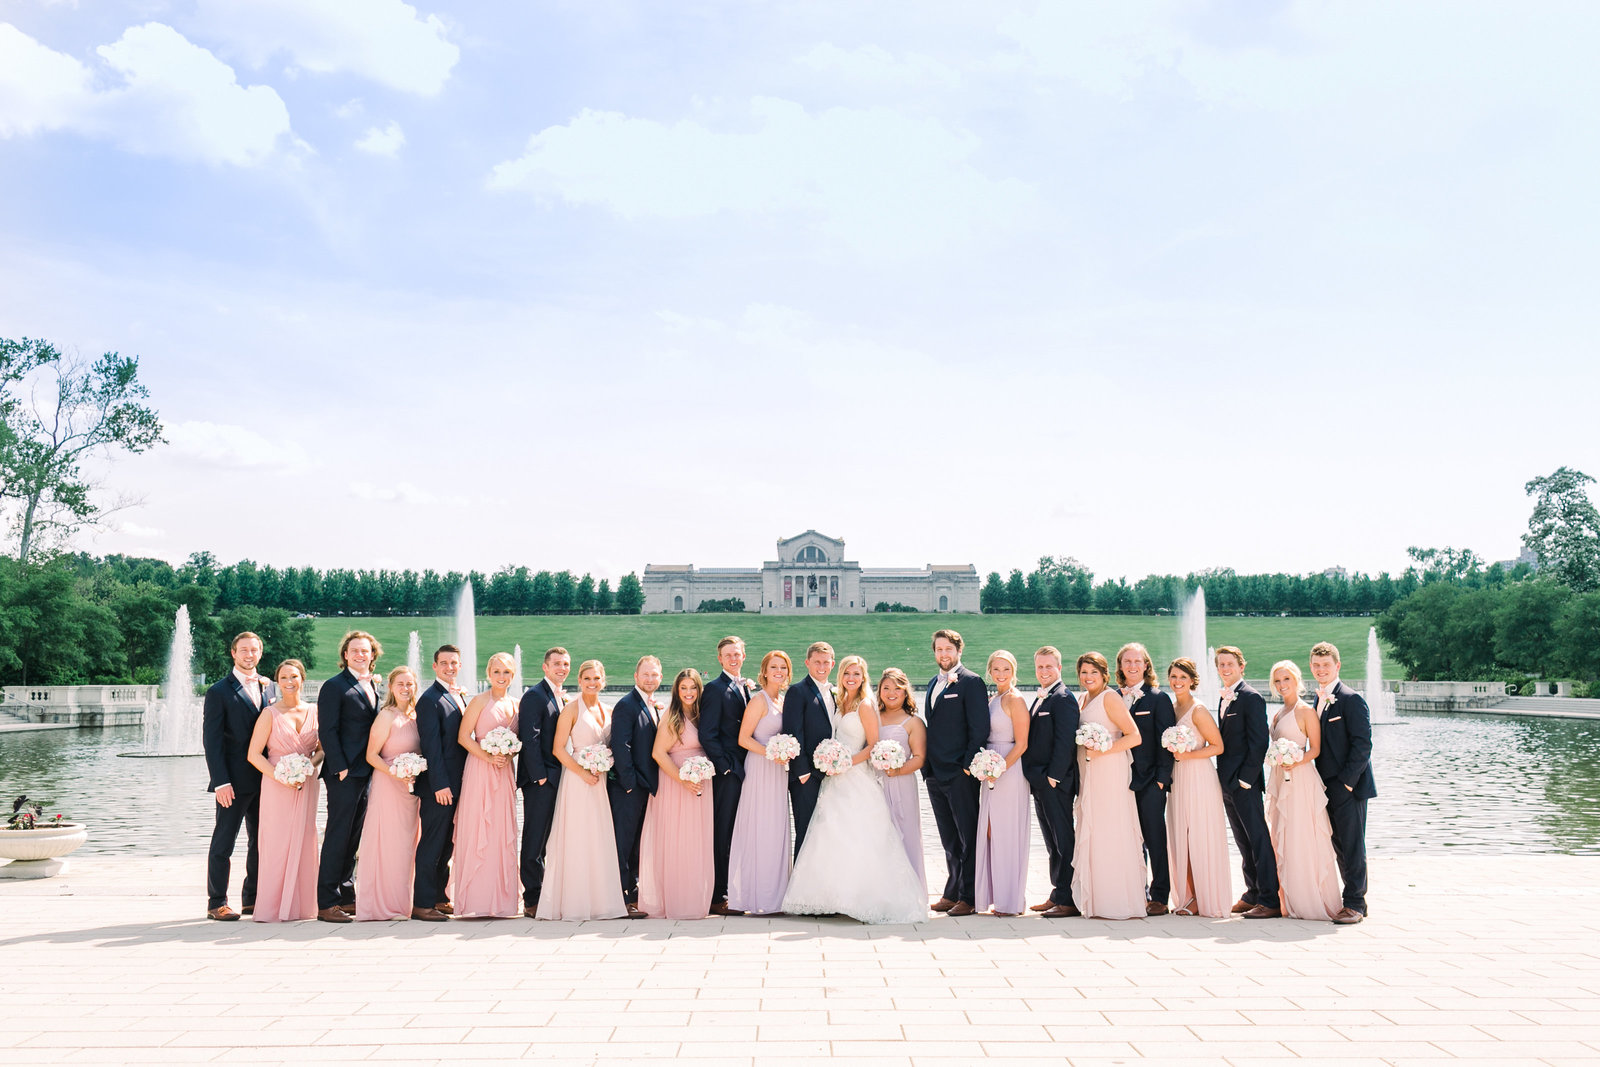 Molly and Marcus's wedding party of 22 people pose in front of the St. Louis Art Museum and Grand Basin with a beautiful clear blue sky.